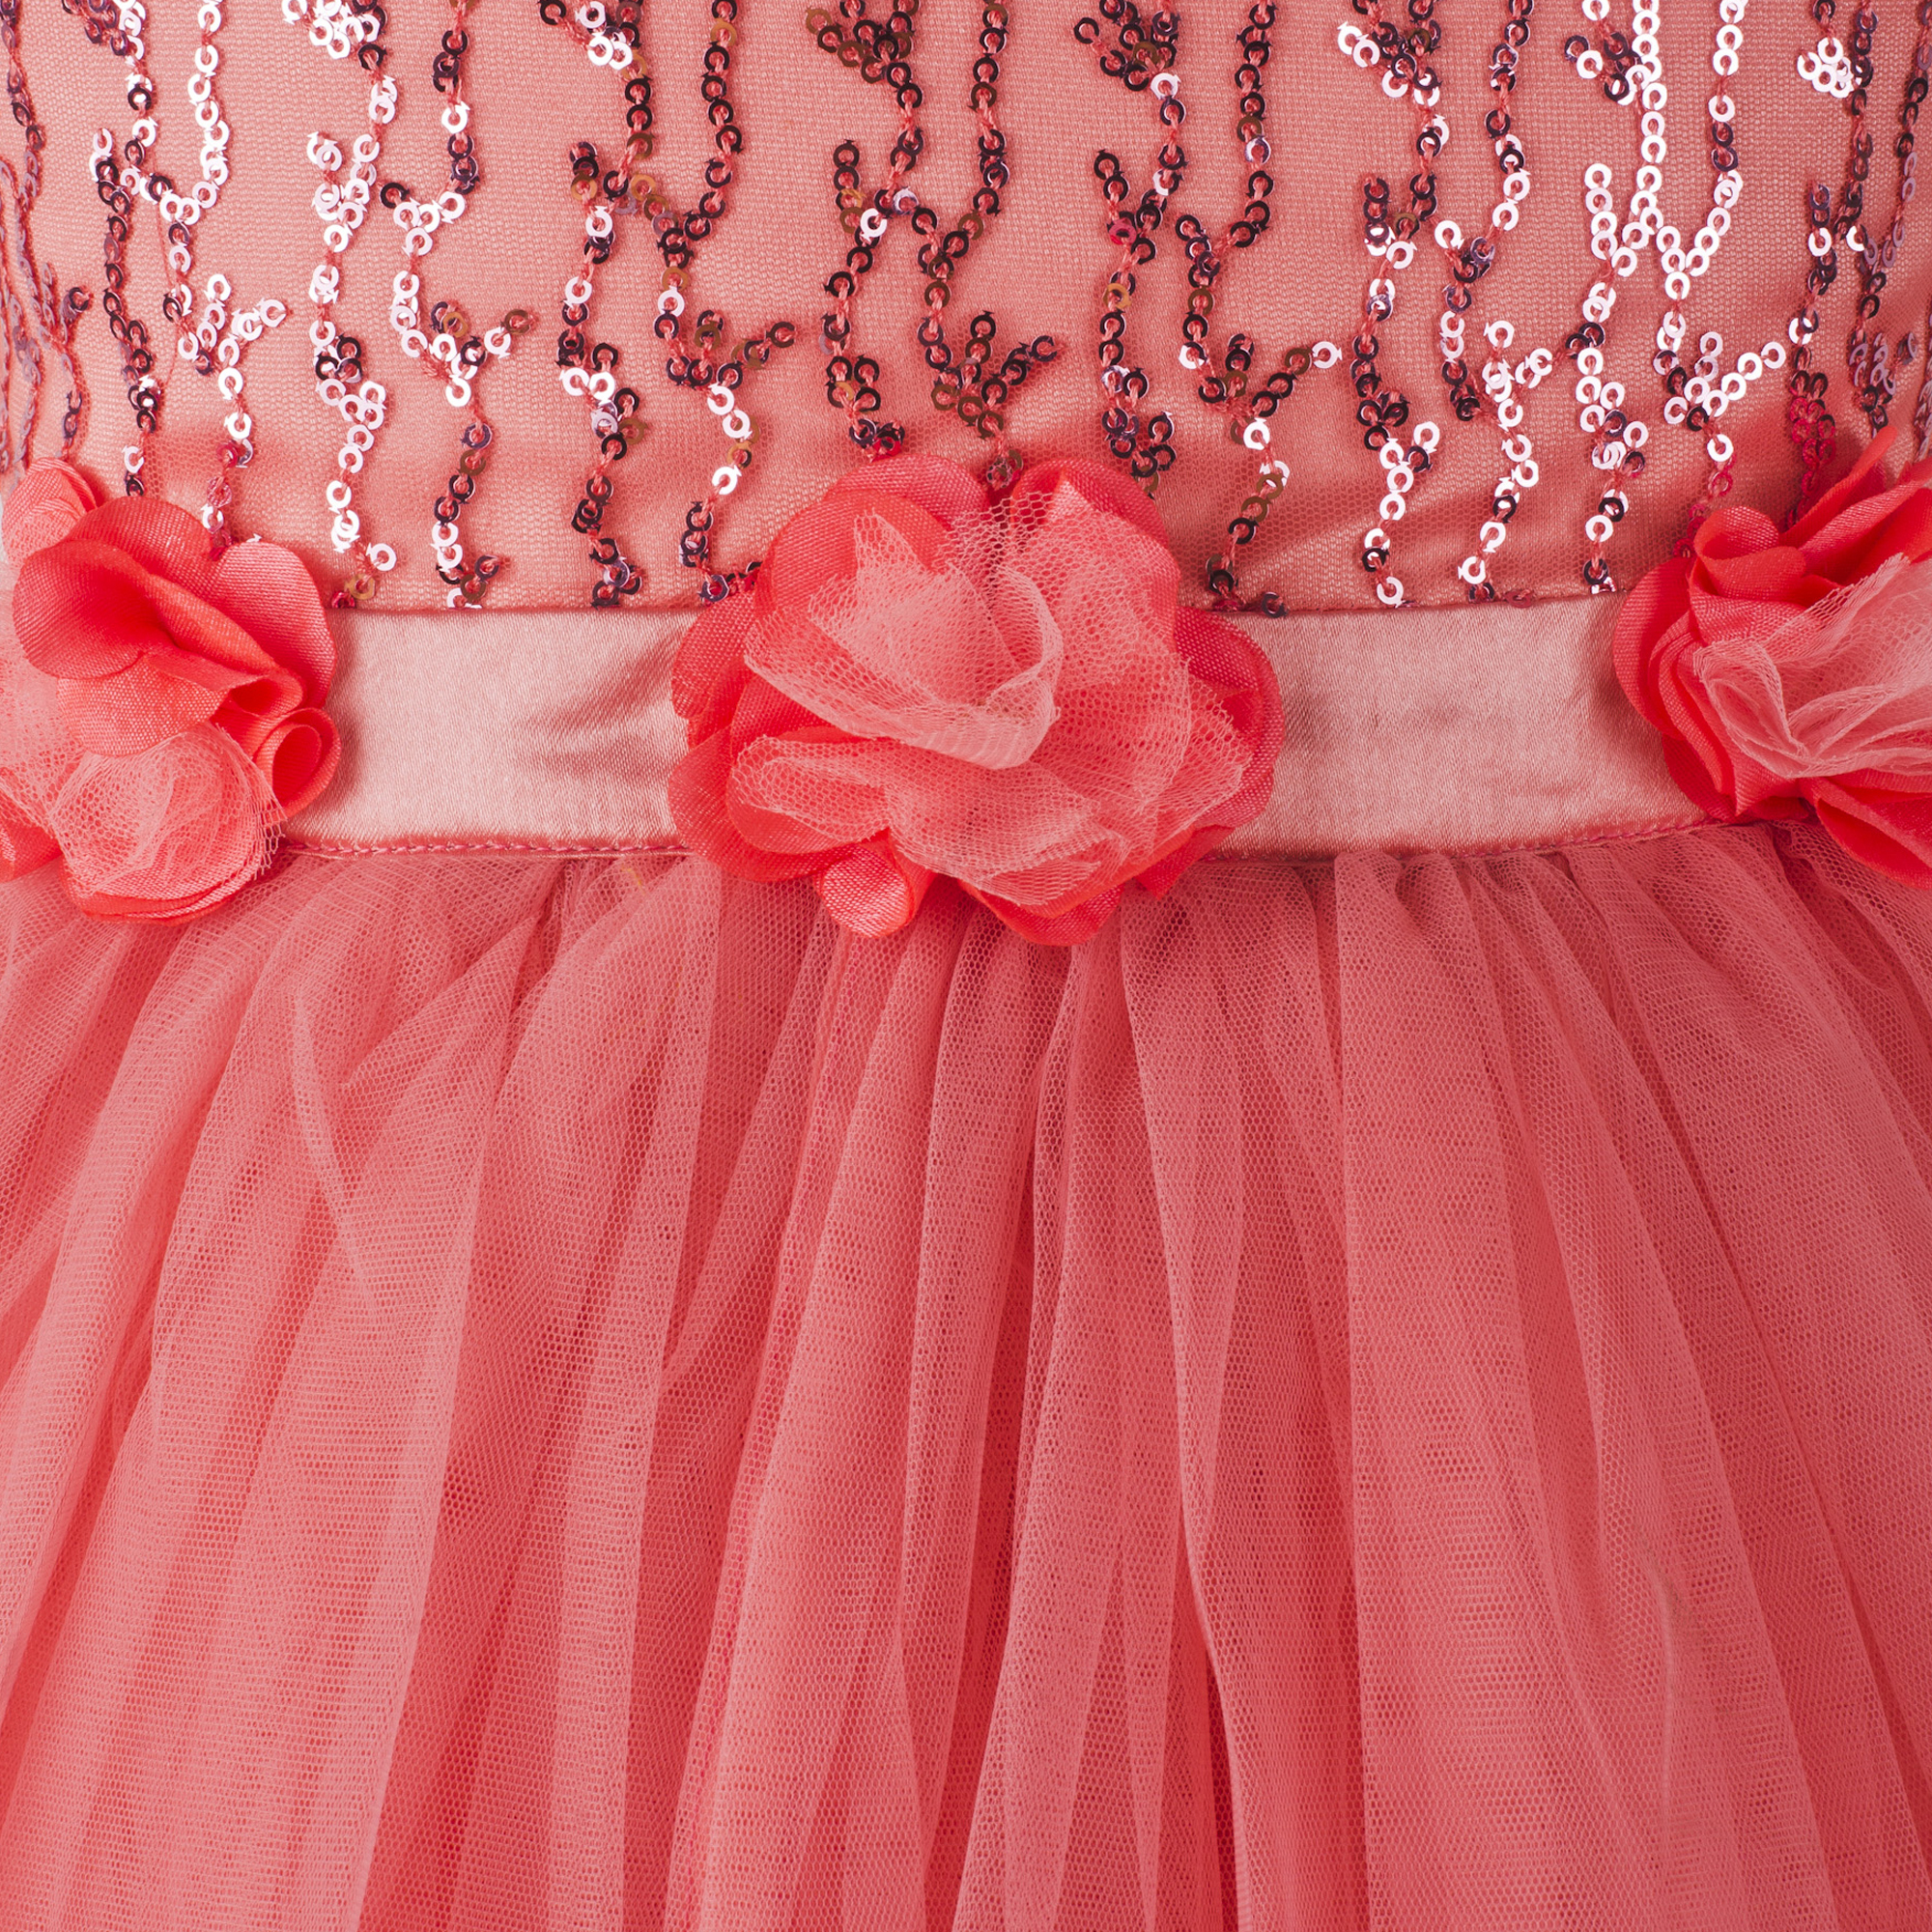 Toy Balloon Kids Girls Party wear Peach Sequins Frock